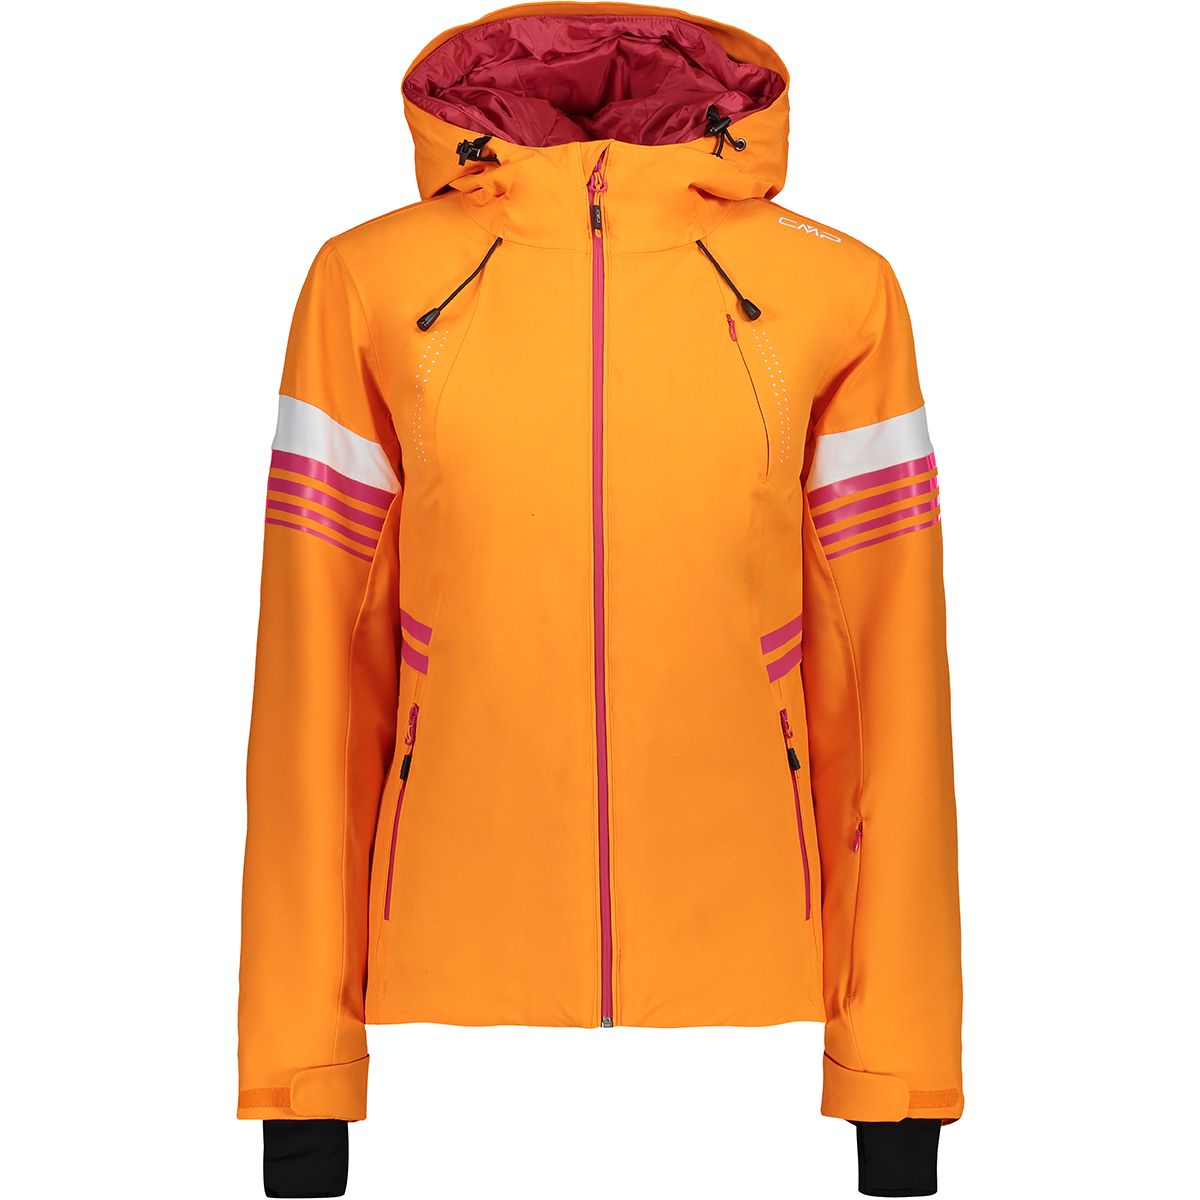 CMP Damen Stretch Hoodie Jacke (Größe L, Orange) | Skijacken > Damen